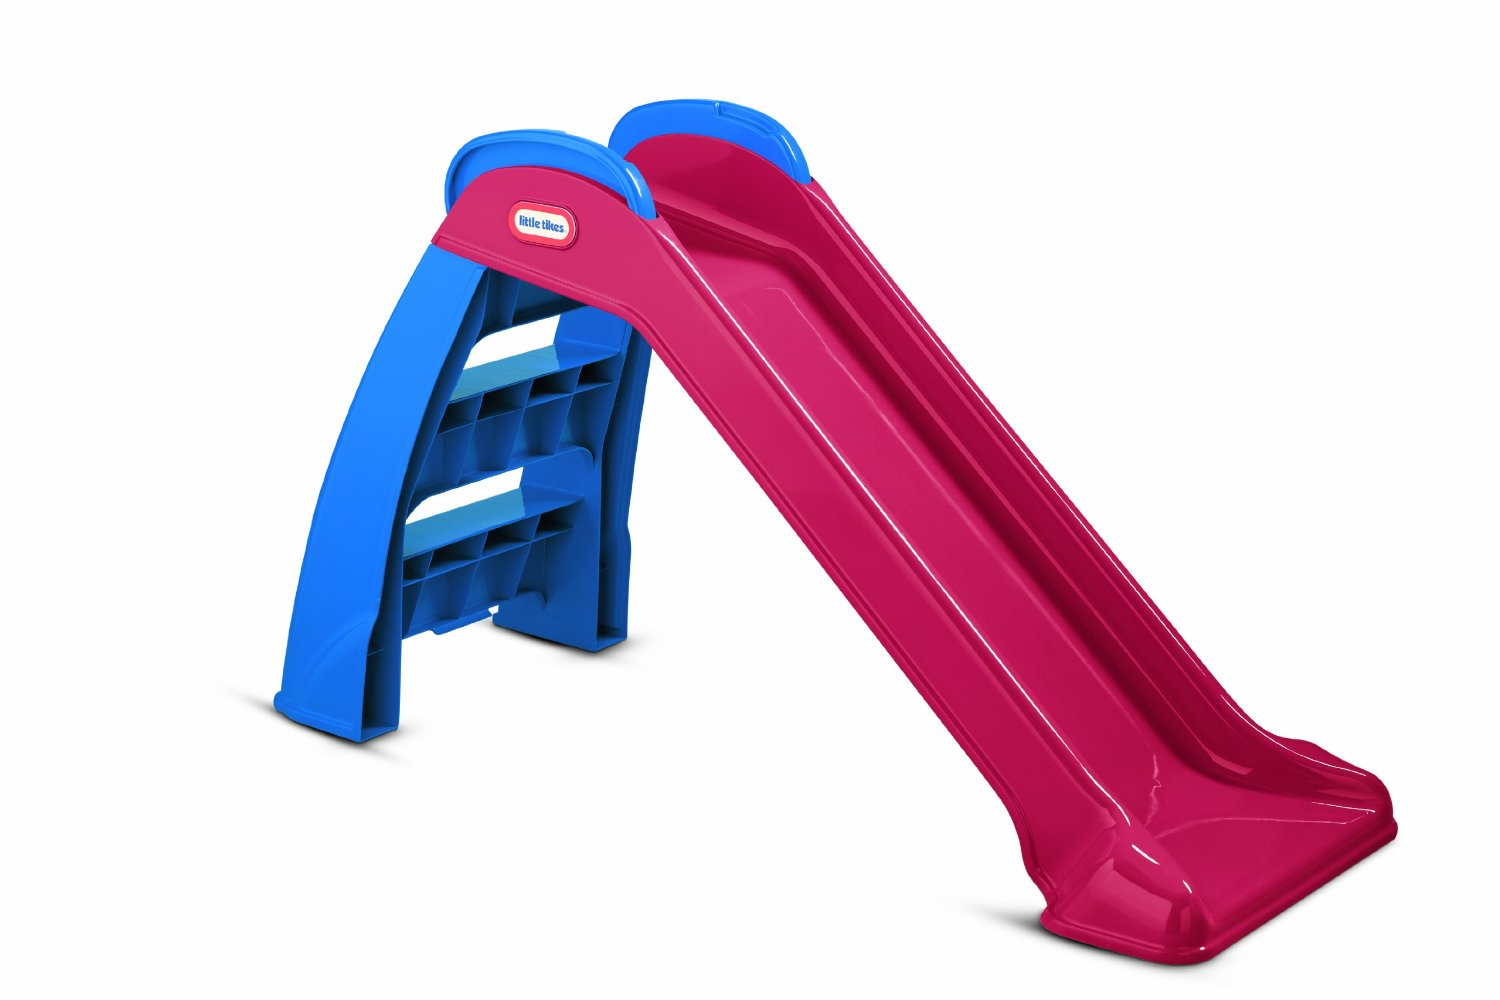 Cool Toys For Toddlers : A look at some of melissa doug s cool toys for toddlers best